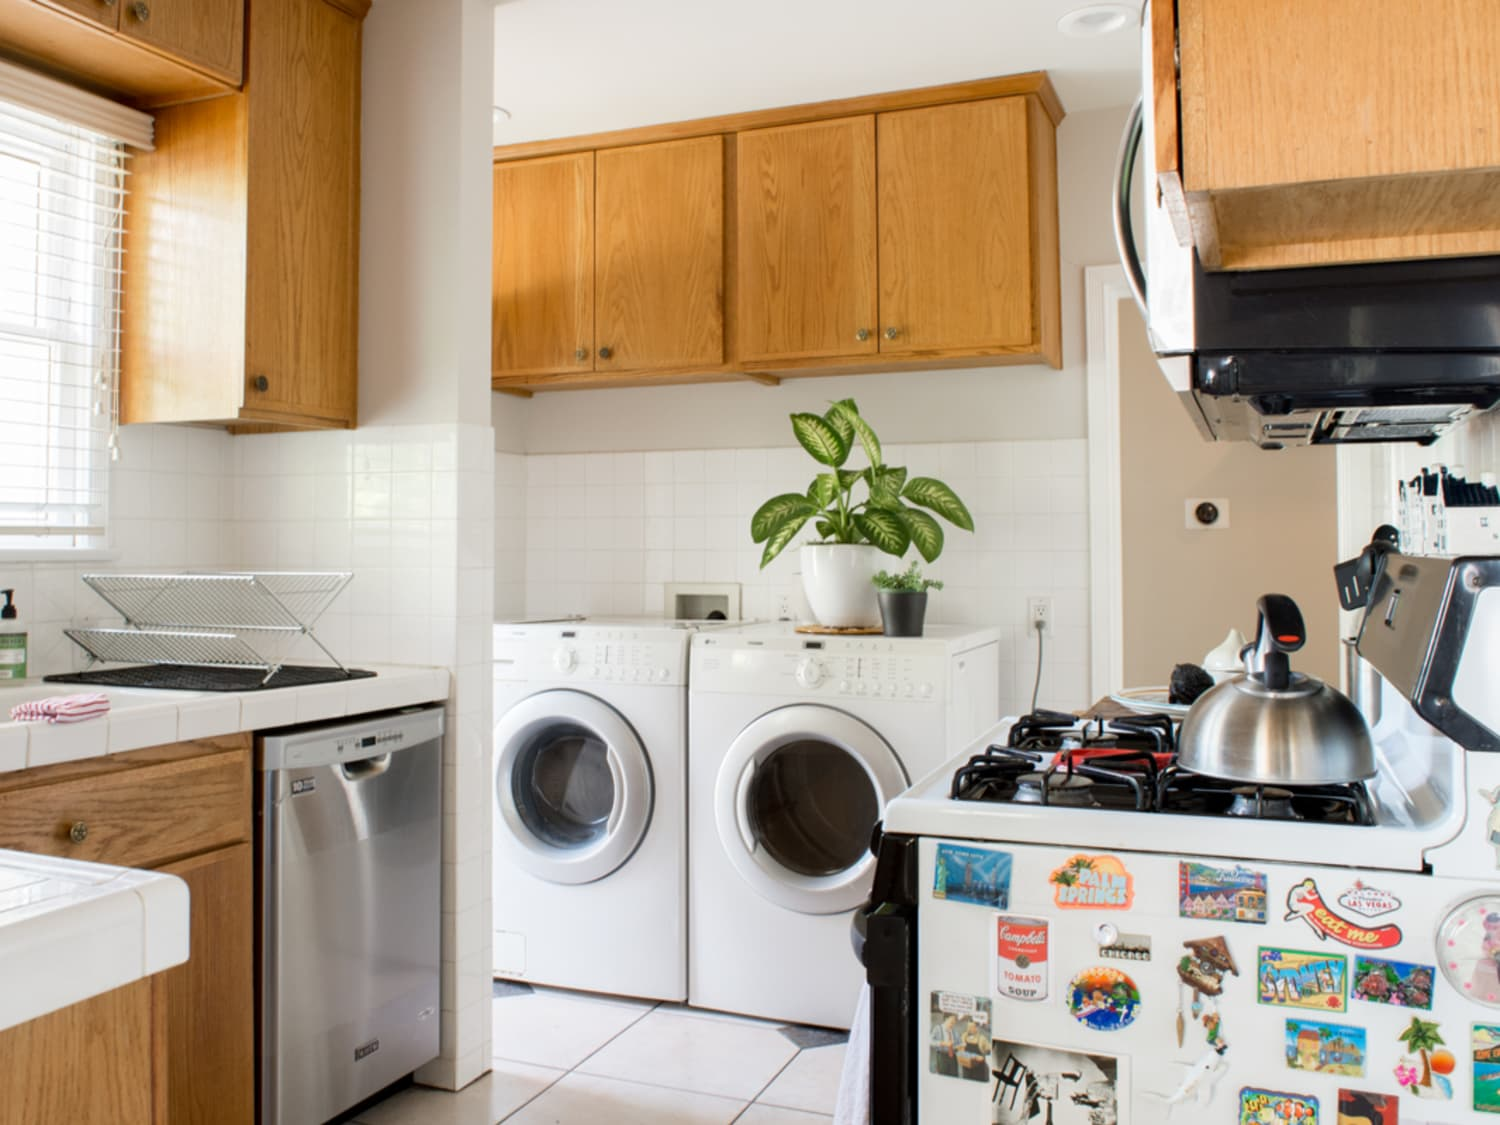 How To: Get Rid of Pesky Home Odors | Apartment Therapy